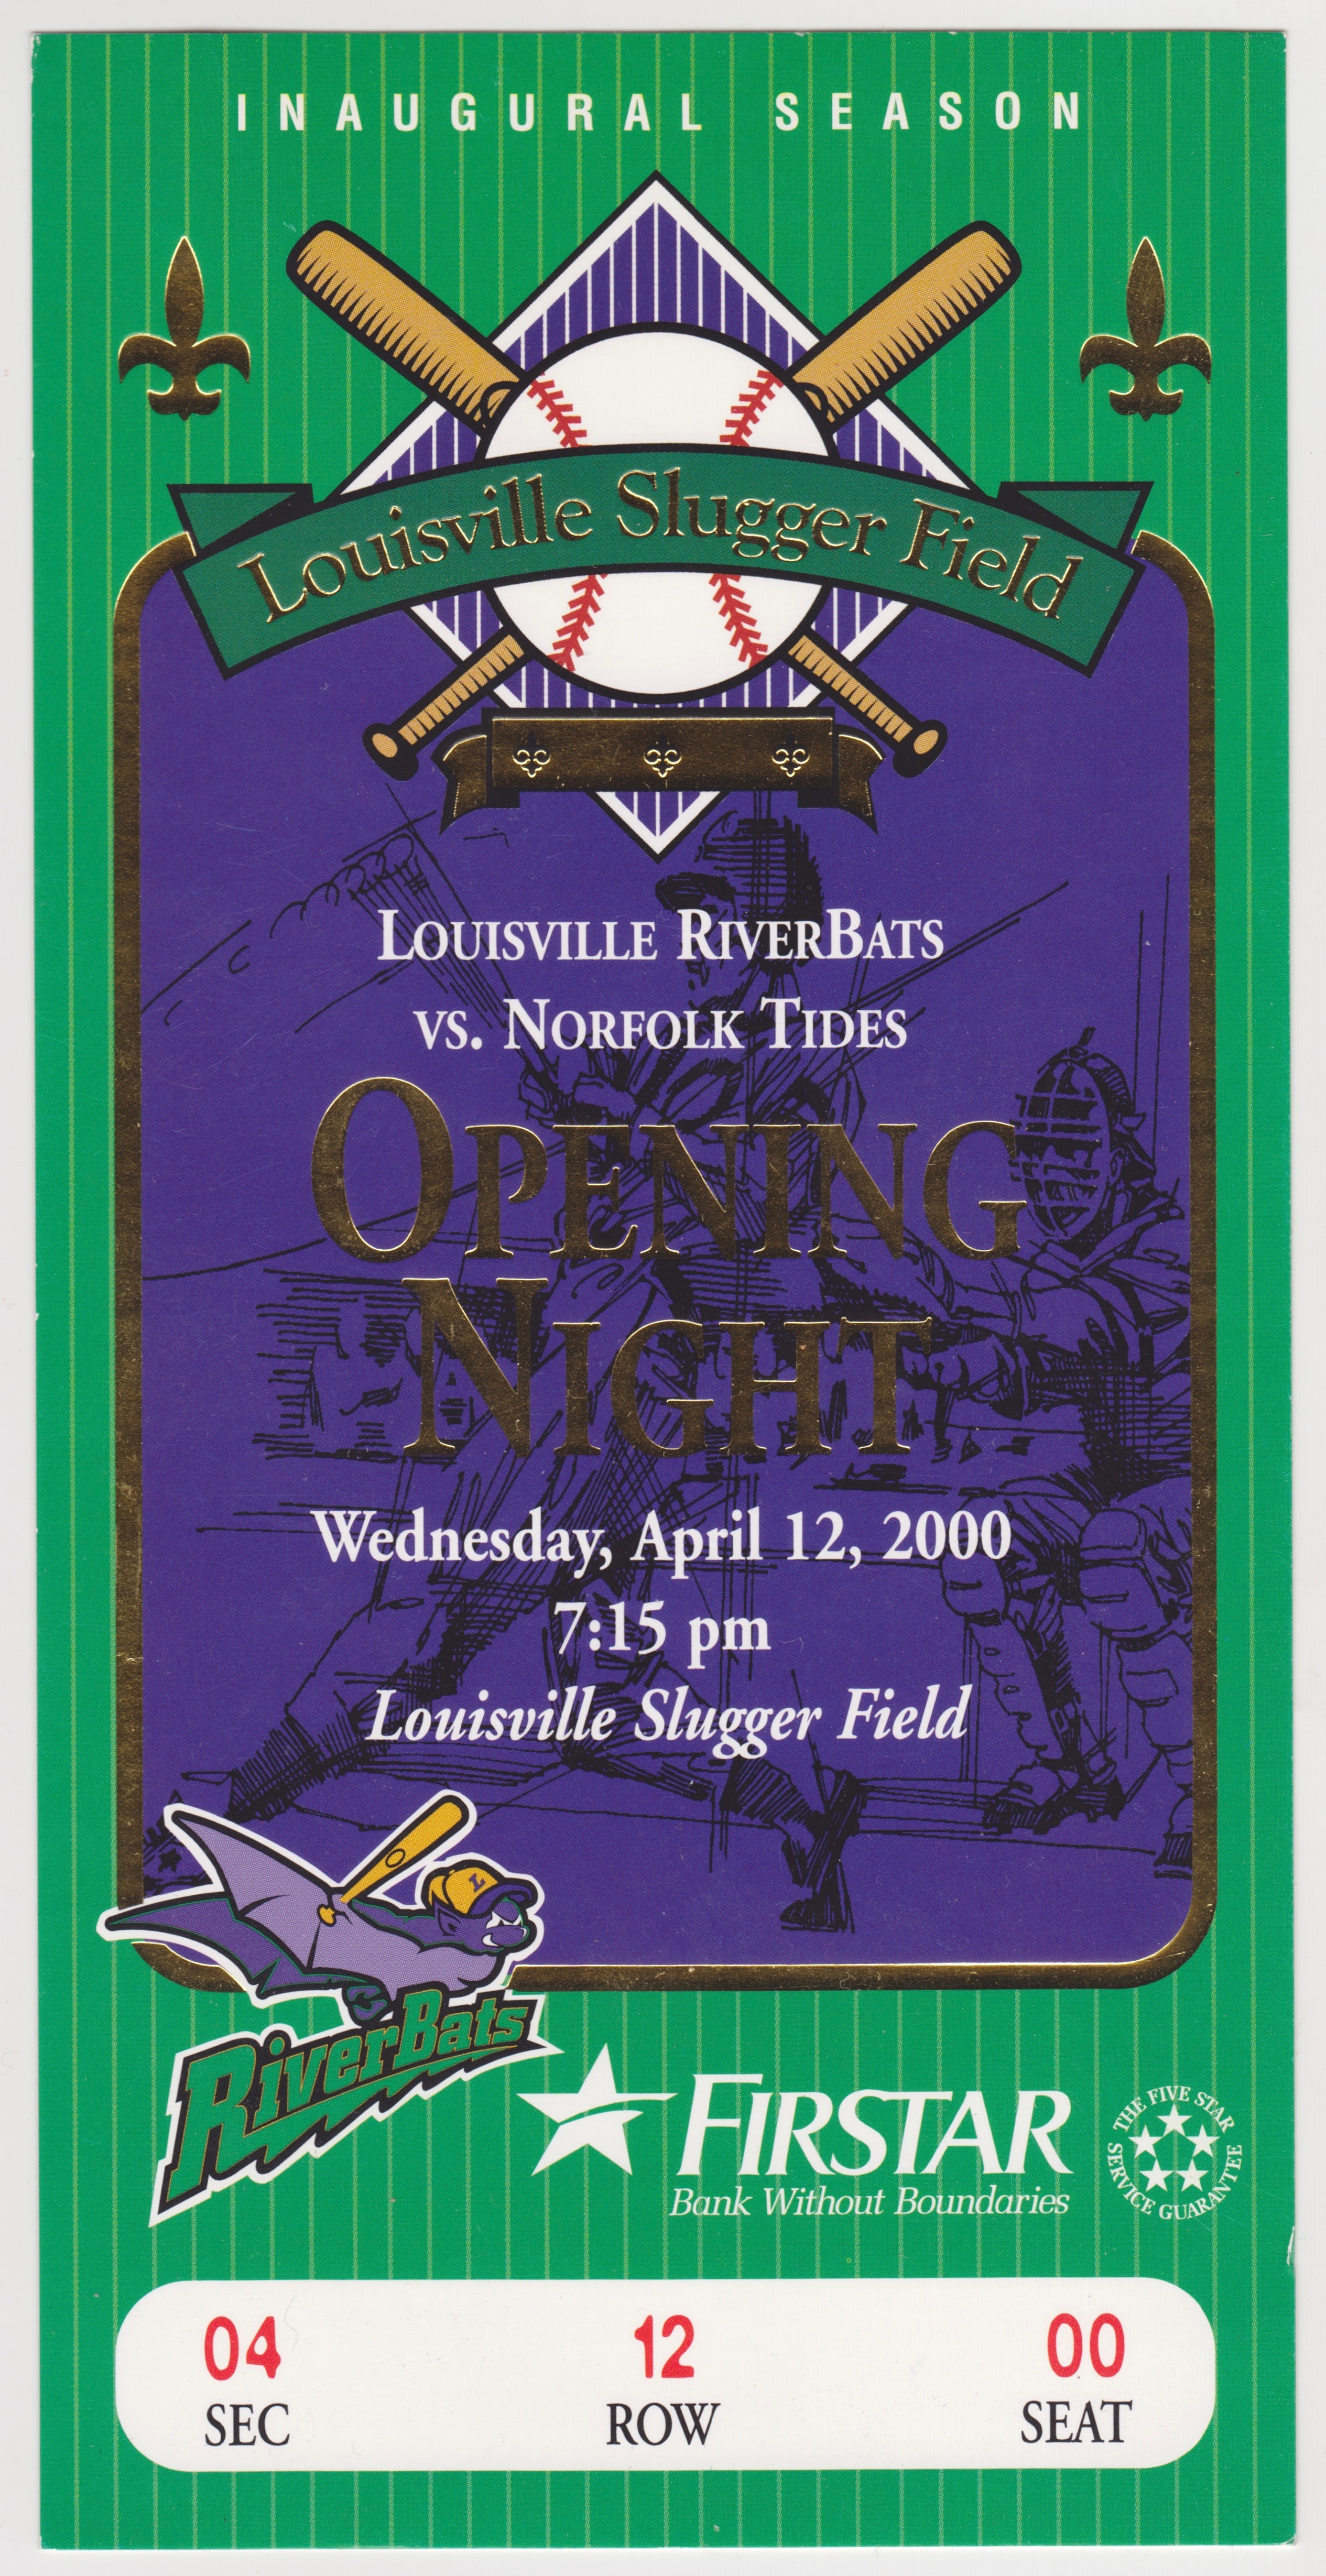 2000 RiverBats ticket stub vs Tides